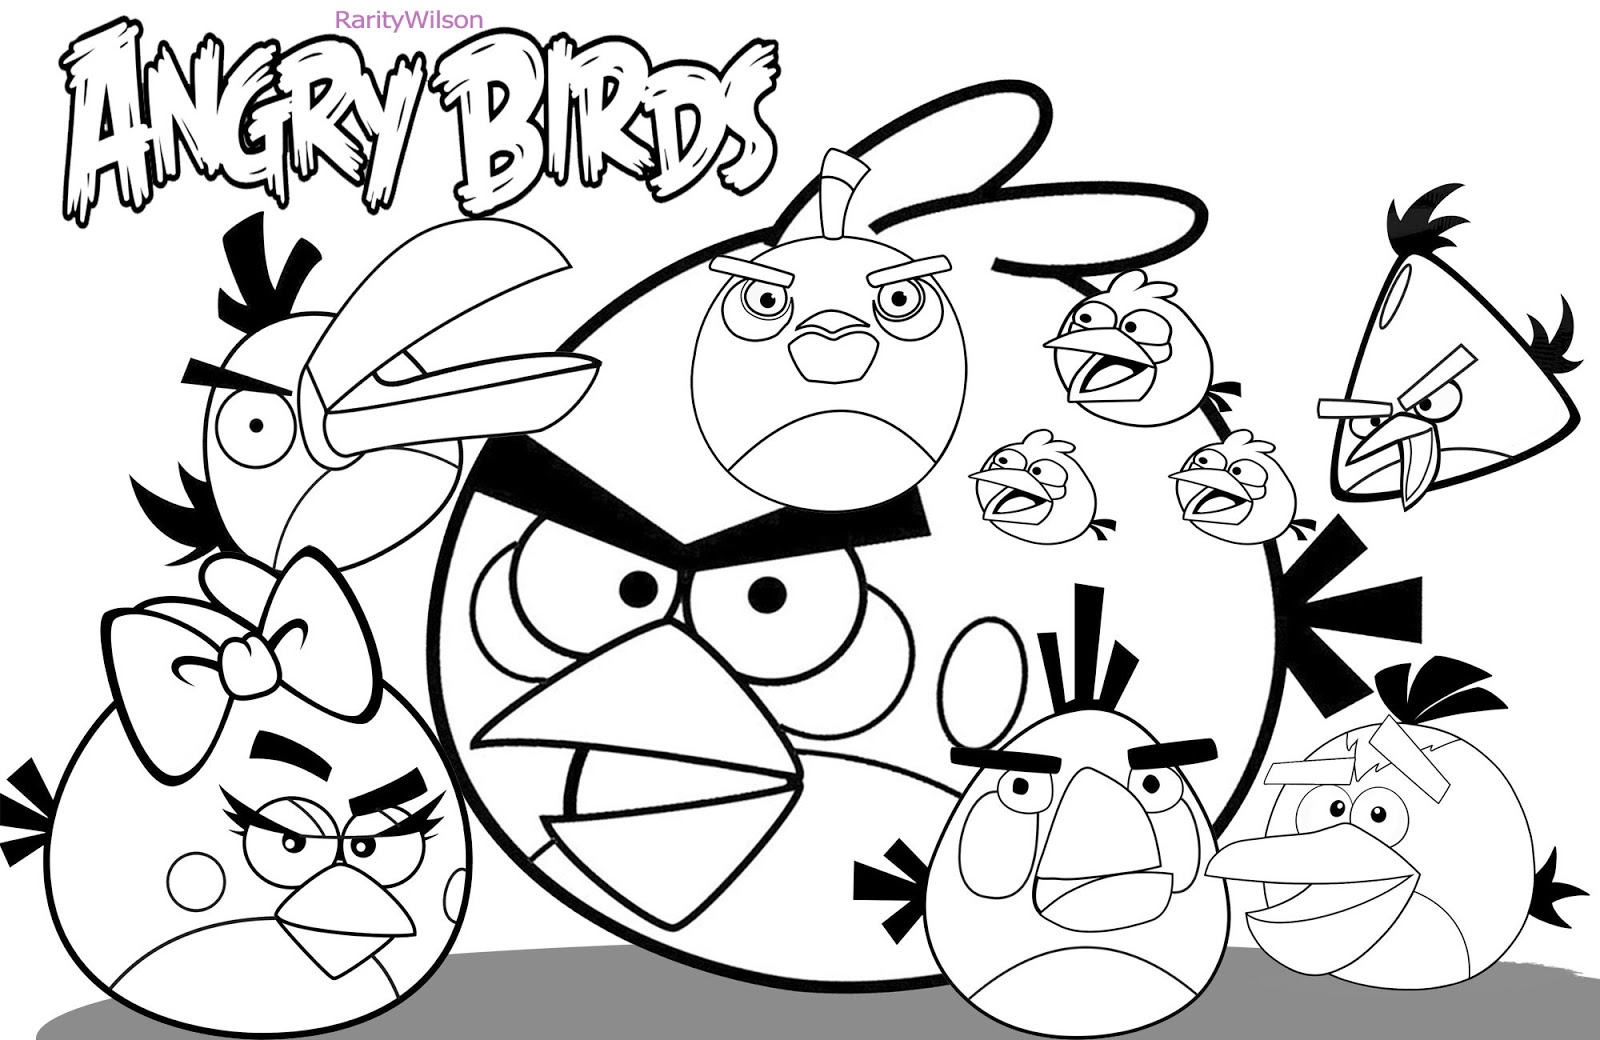 Personalized Party Invites News - Angry Birds Free Printable ...